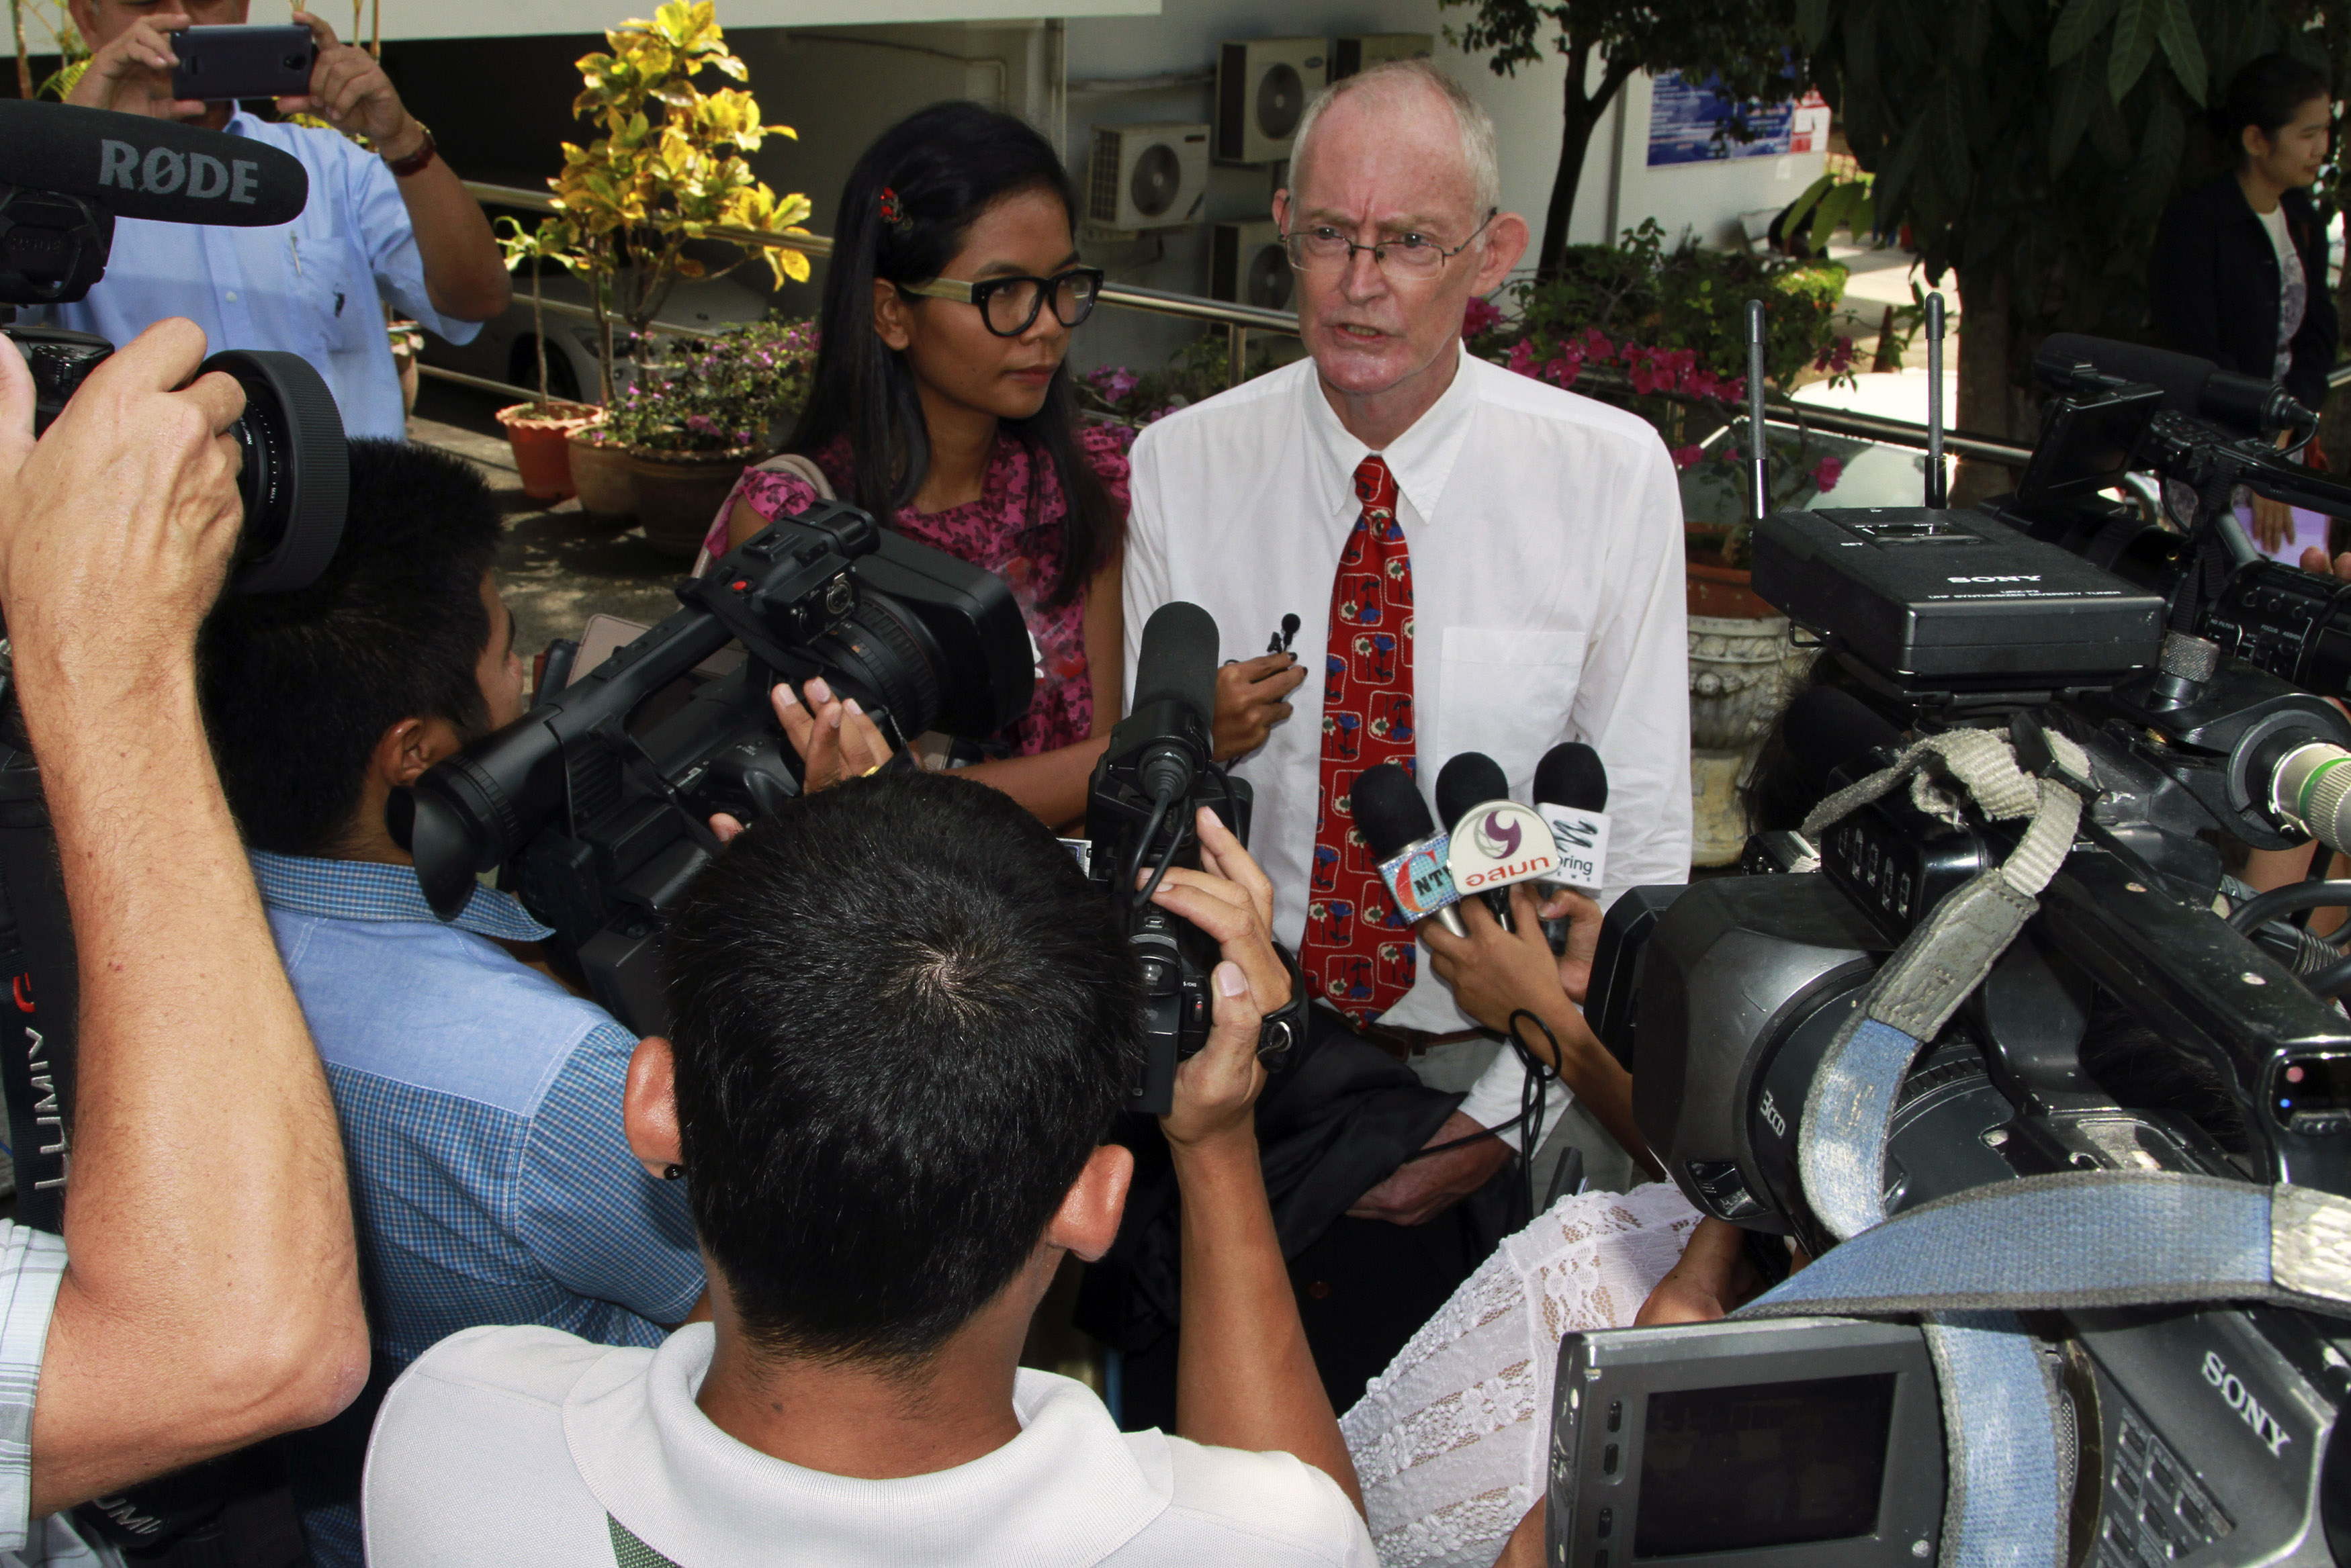 Phuketwan journalists Alan Morison, right, and Chutima Sidasathian speak to media as they arrive to a criminal court in Phuket on April 17, 2014